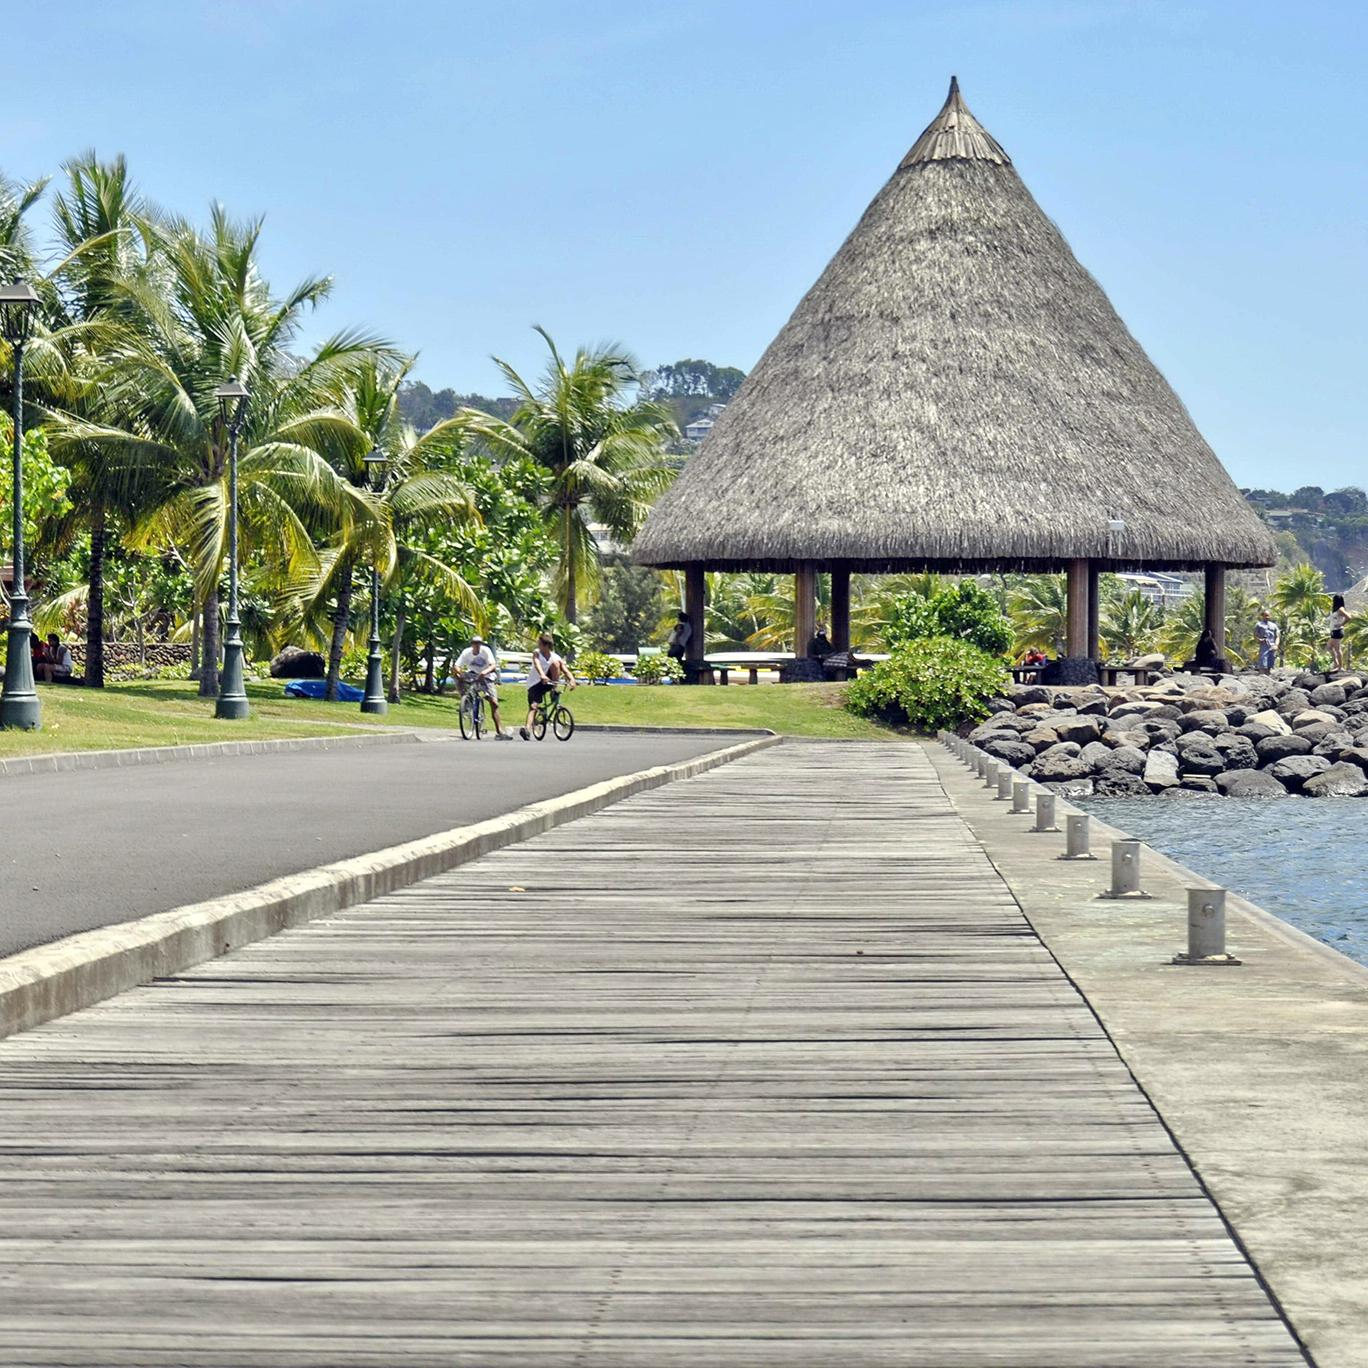 Biking along the coastline of Papeete, Tahiti